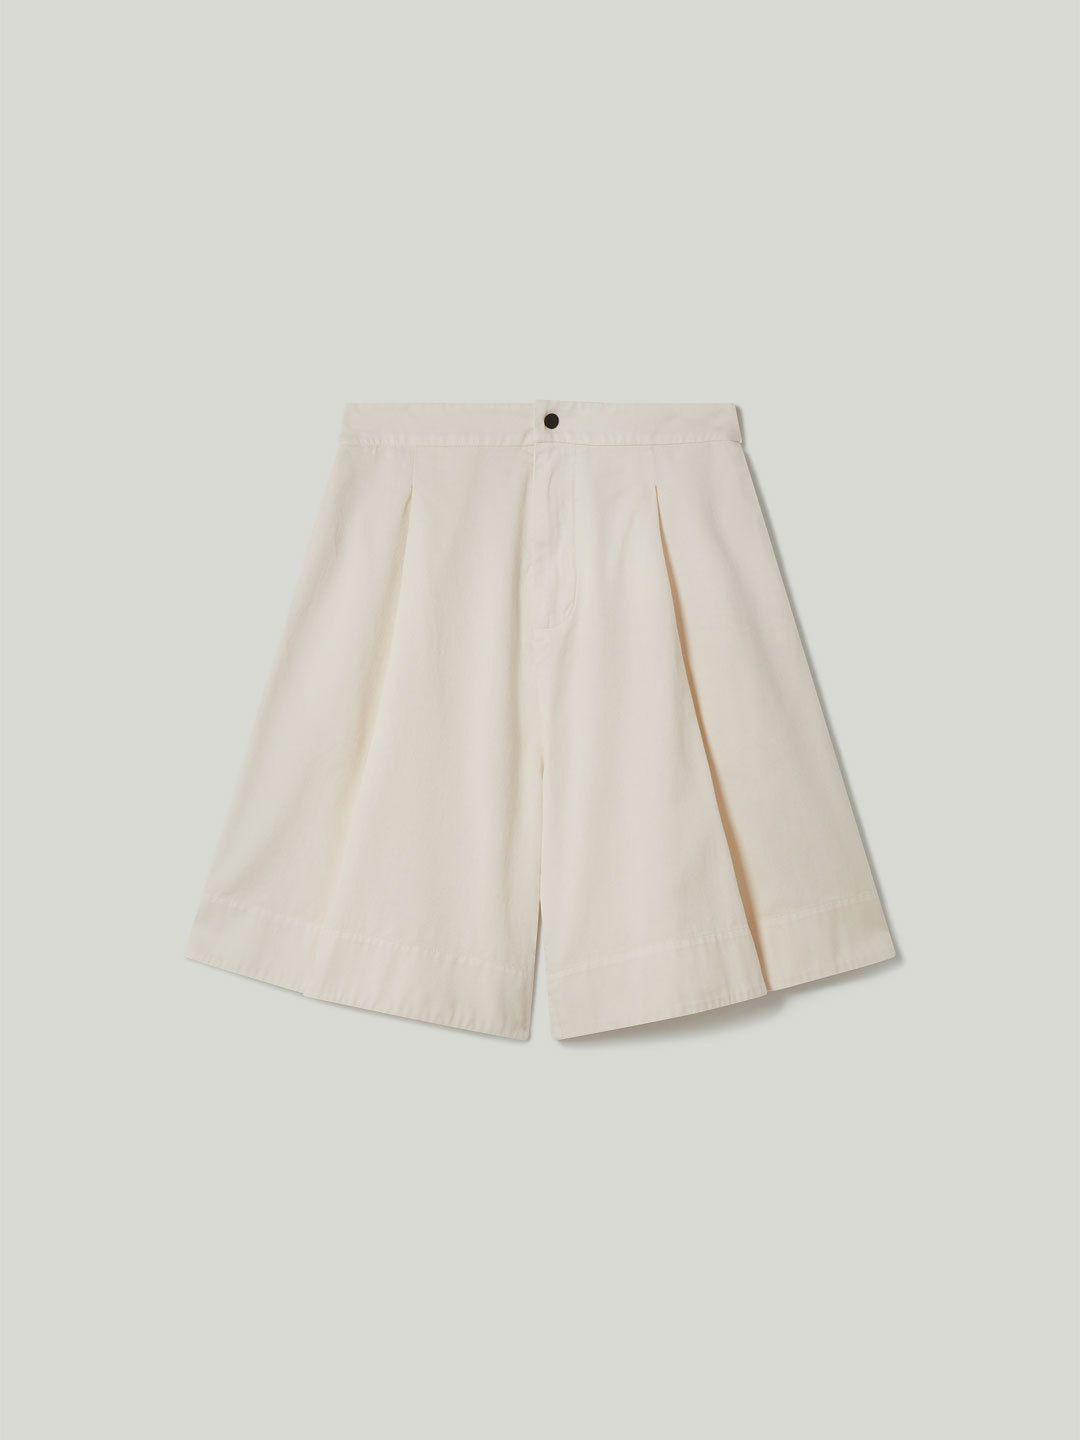 The Mudlark Shorts / Stone - Ivory